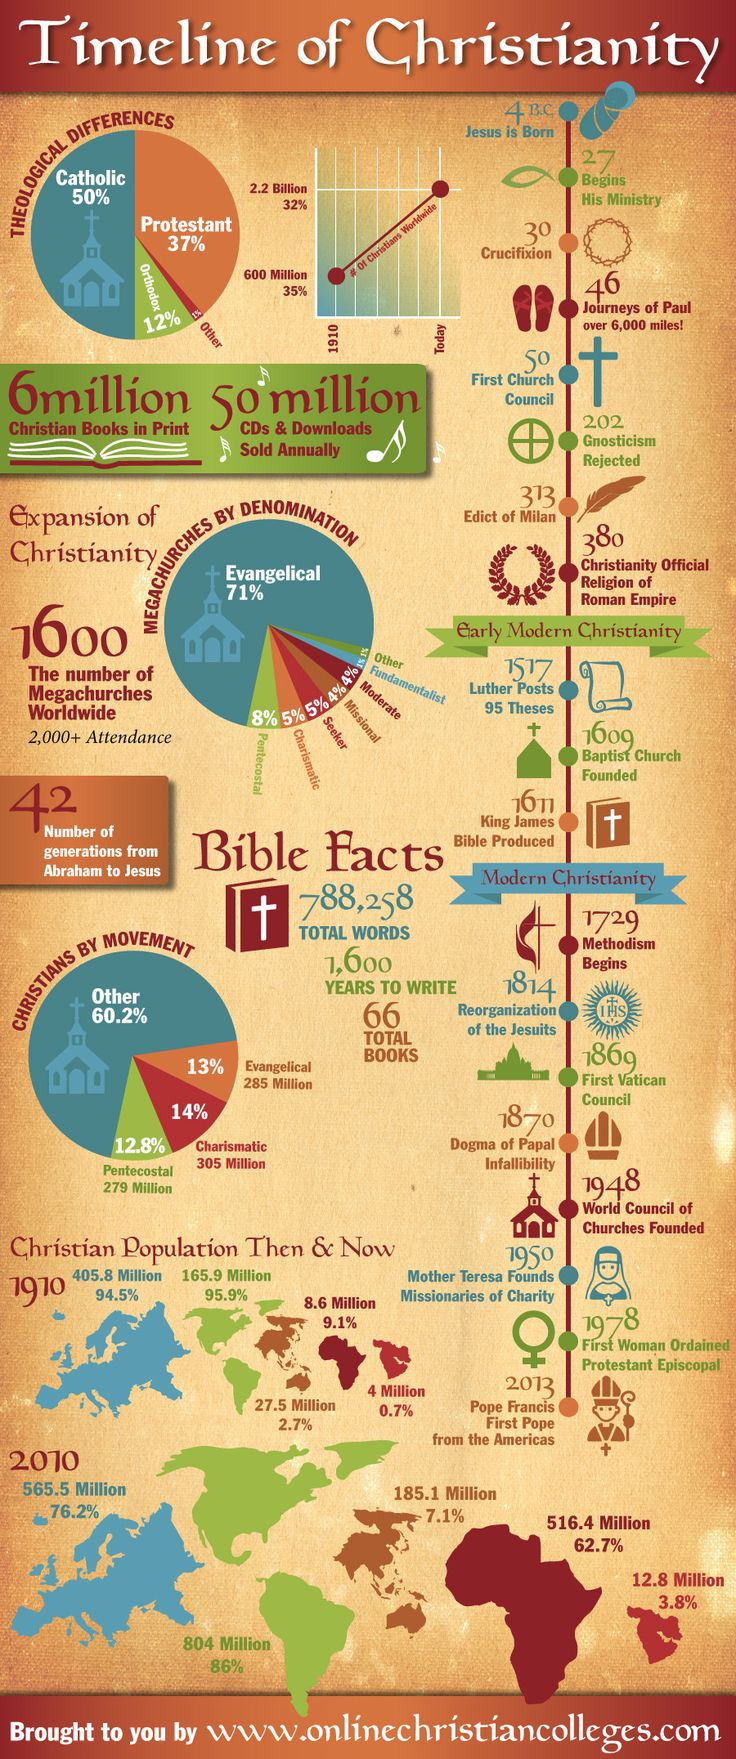 A Timeline of Christianity [Infographic]